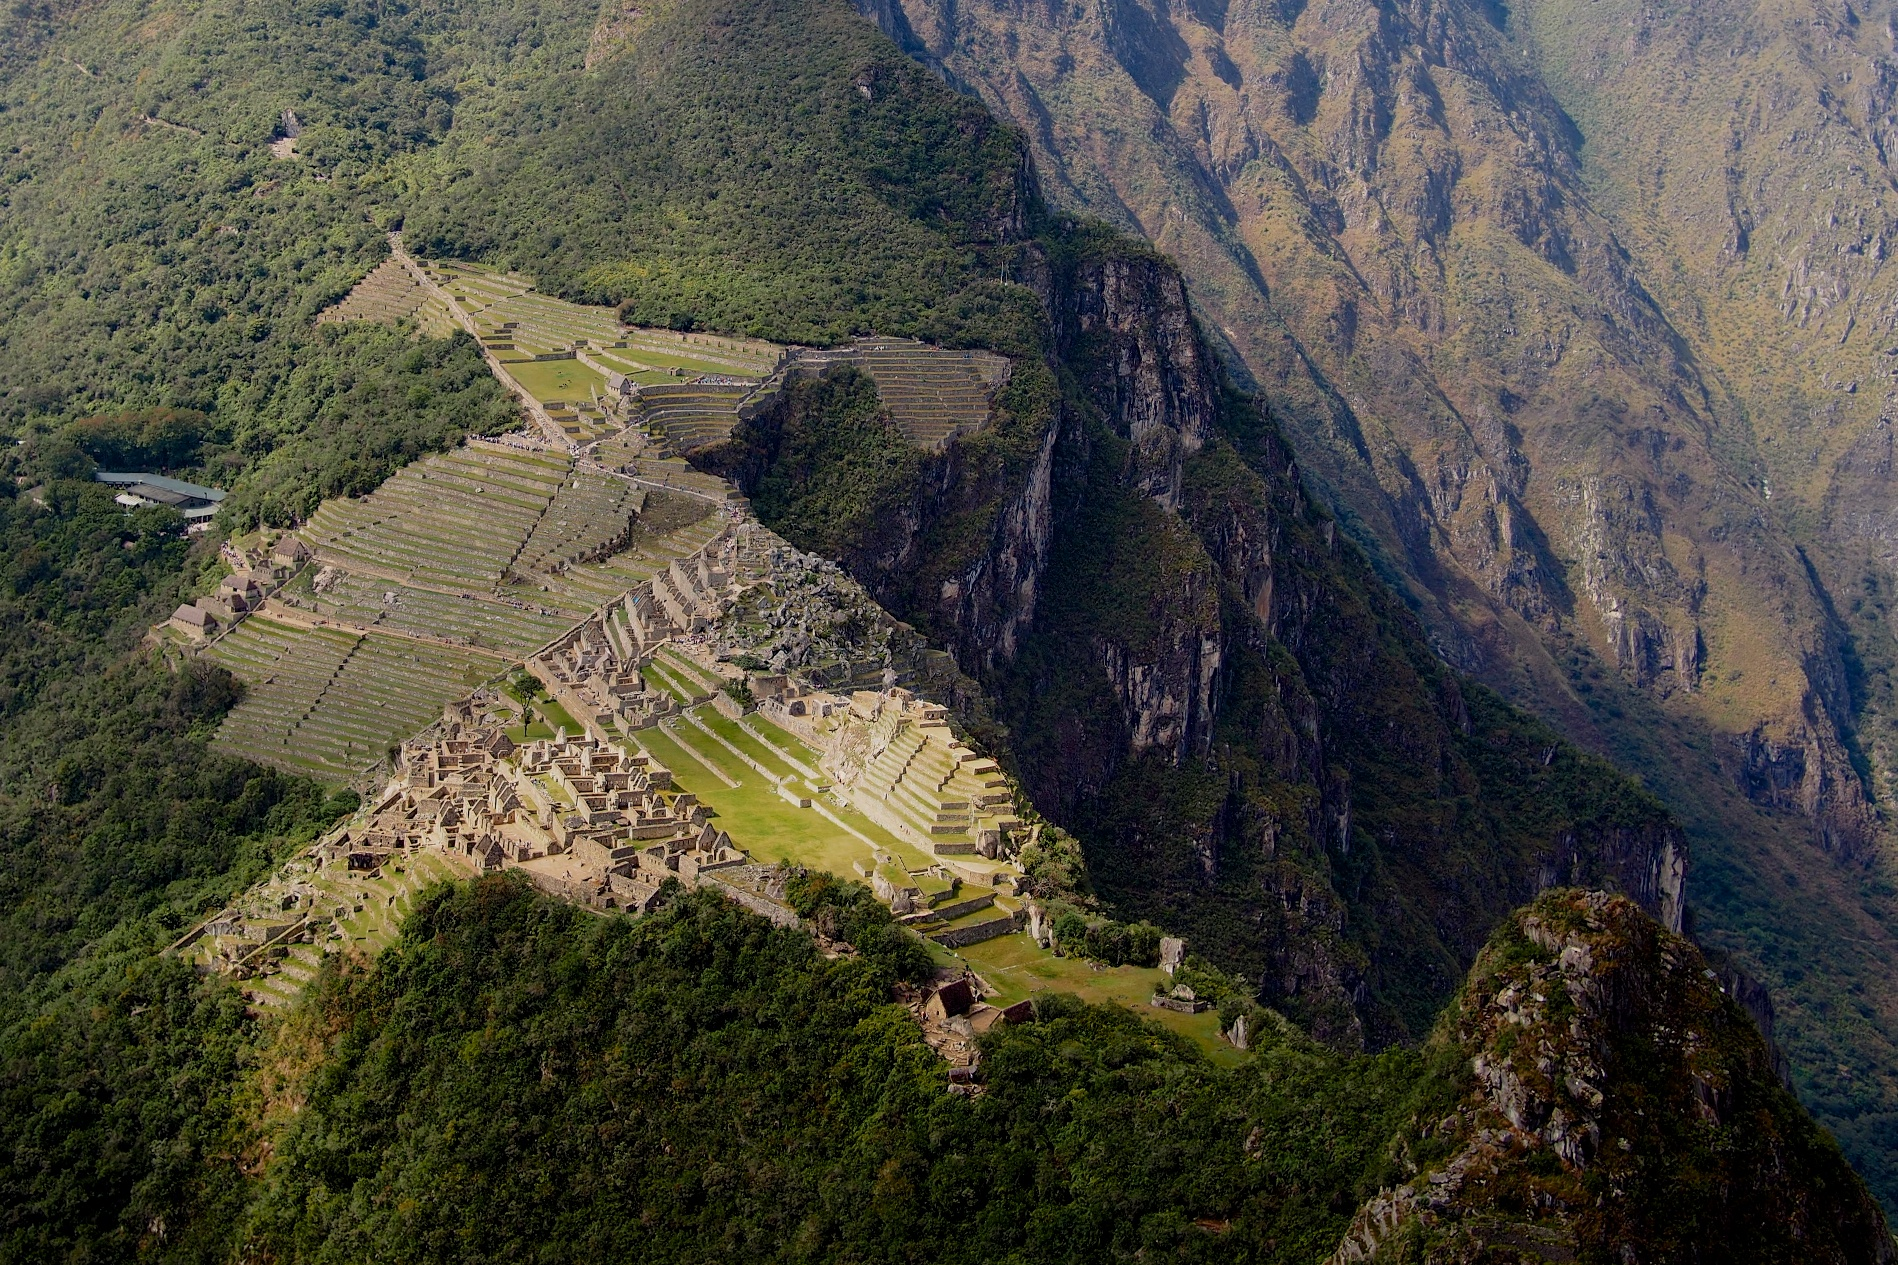 View of Machu Picchu from Wayna Picchu. We were 2 of the lucky 400 that get to climb up and see this view everyday. The road in the picture below is the one buses use to get up to Machu Picchu. That means that the steps up cut right across in a straight line resulting in some sore legs...